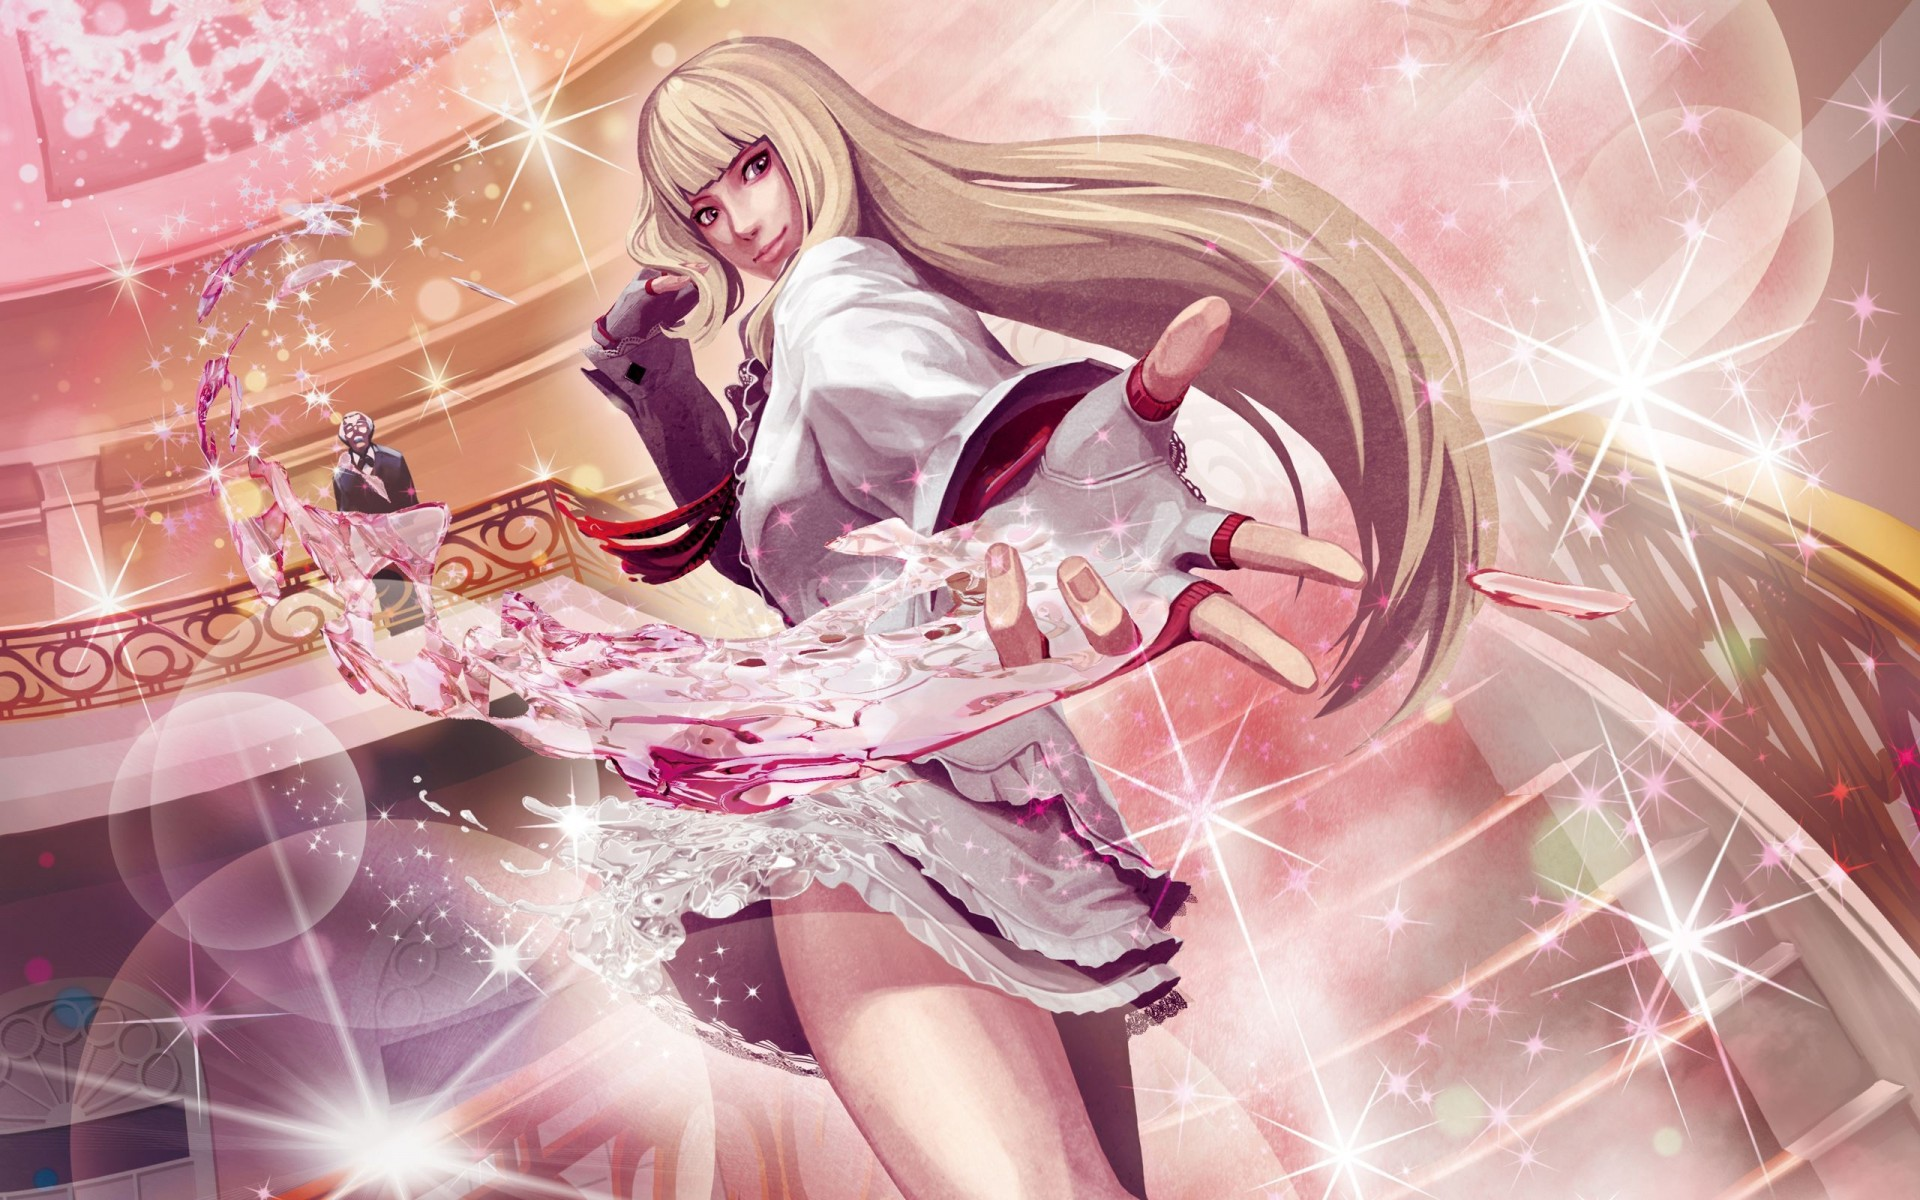 Wallpaper Street Fighter x Tekken Lili.